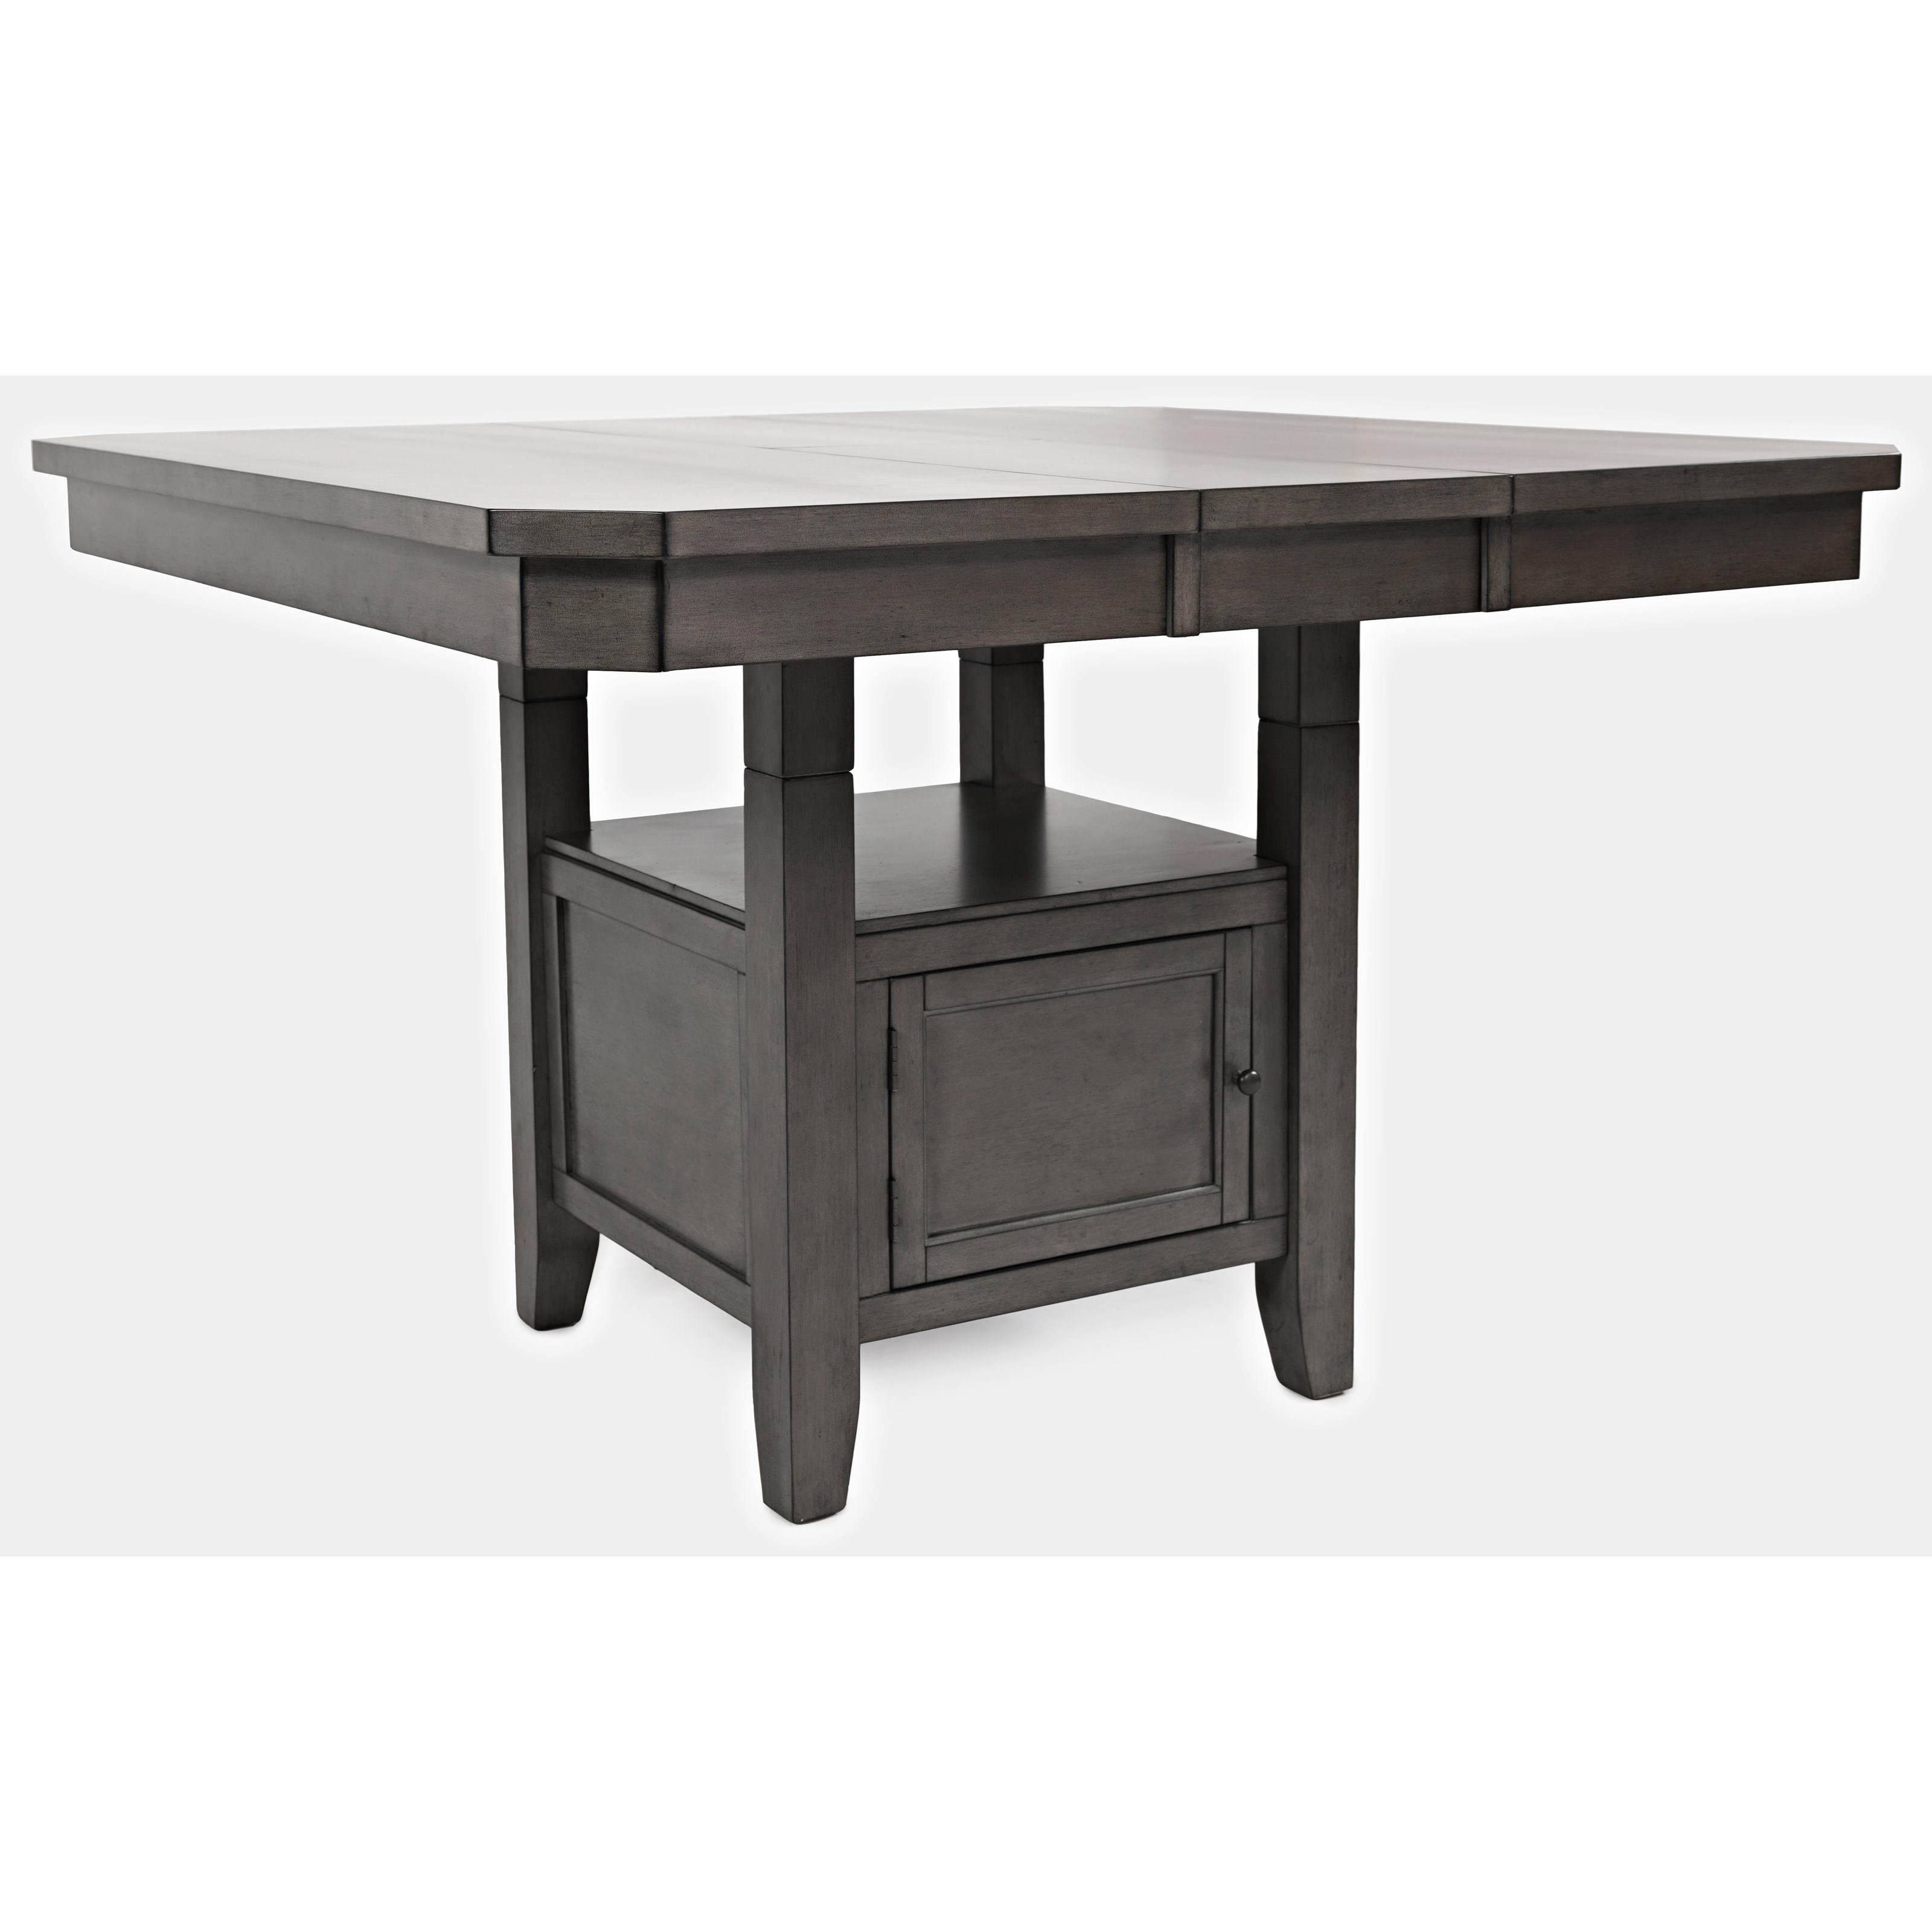 low dining room table | Jofran Manchester 1872-54 High/Low Square Dining Table ...